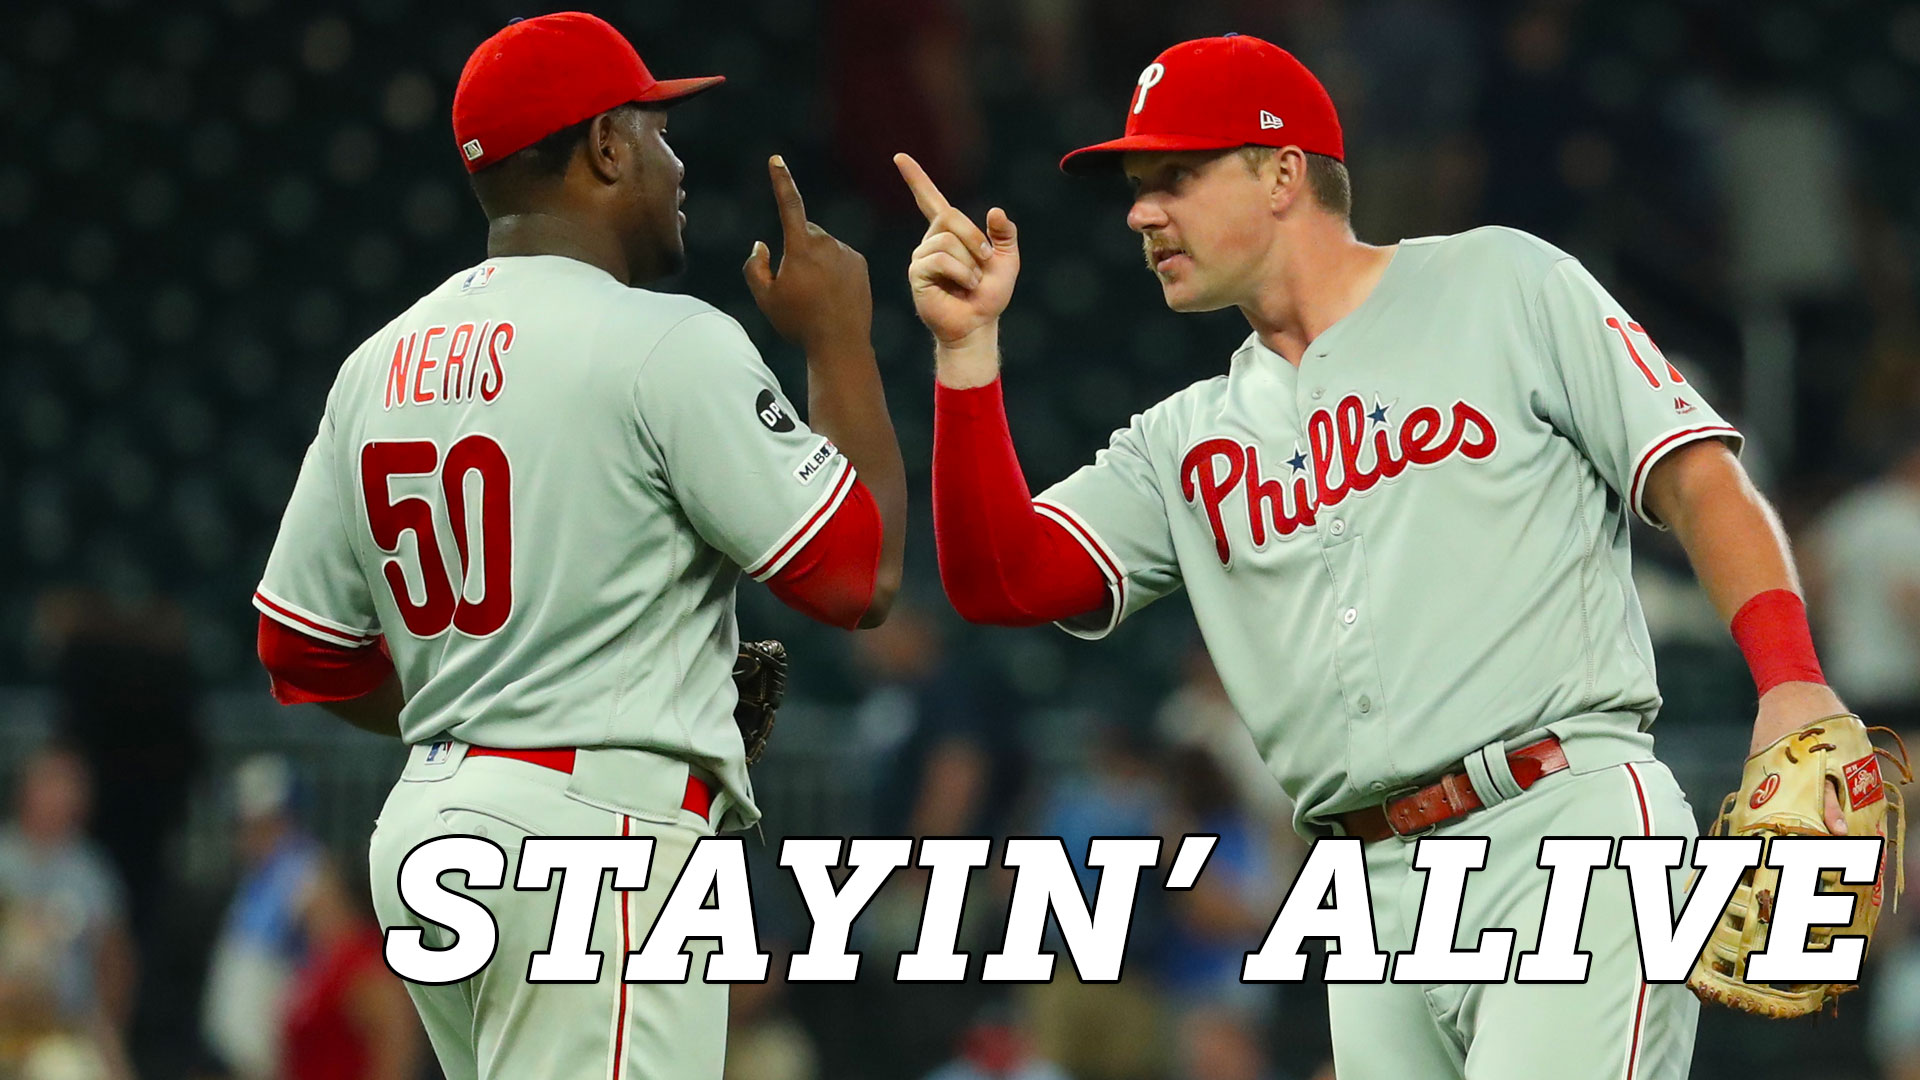 Phillies get revenge on Dallas Keuchel, get crucial win to stay afloat